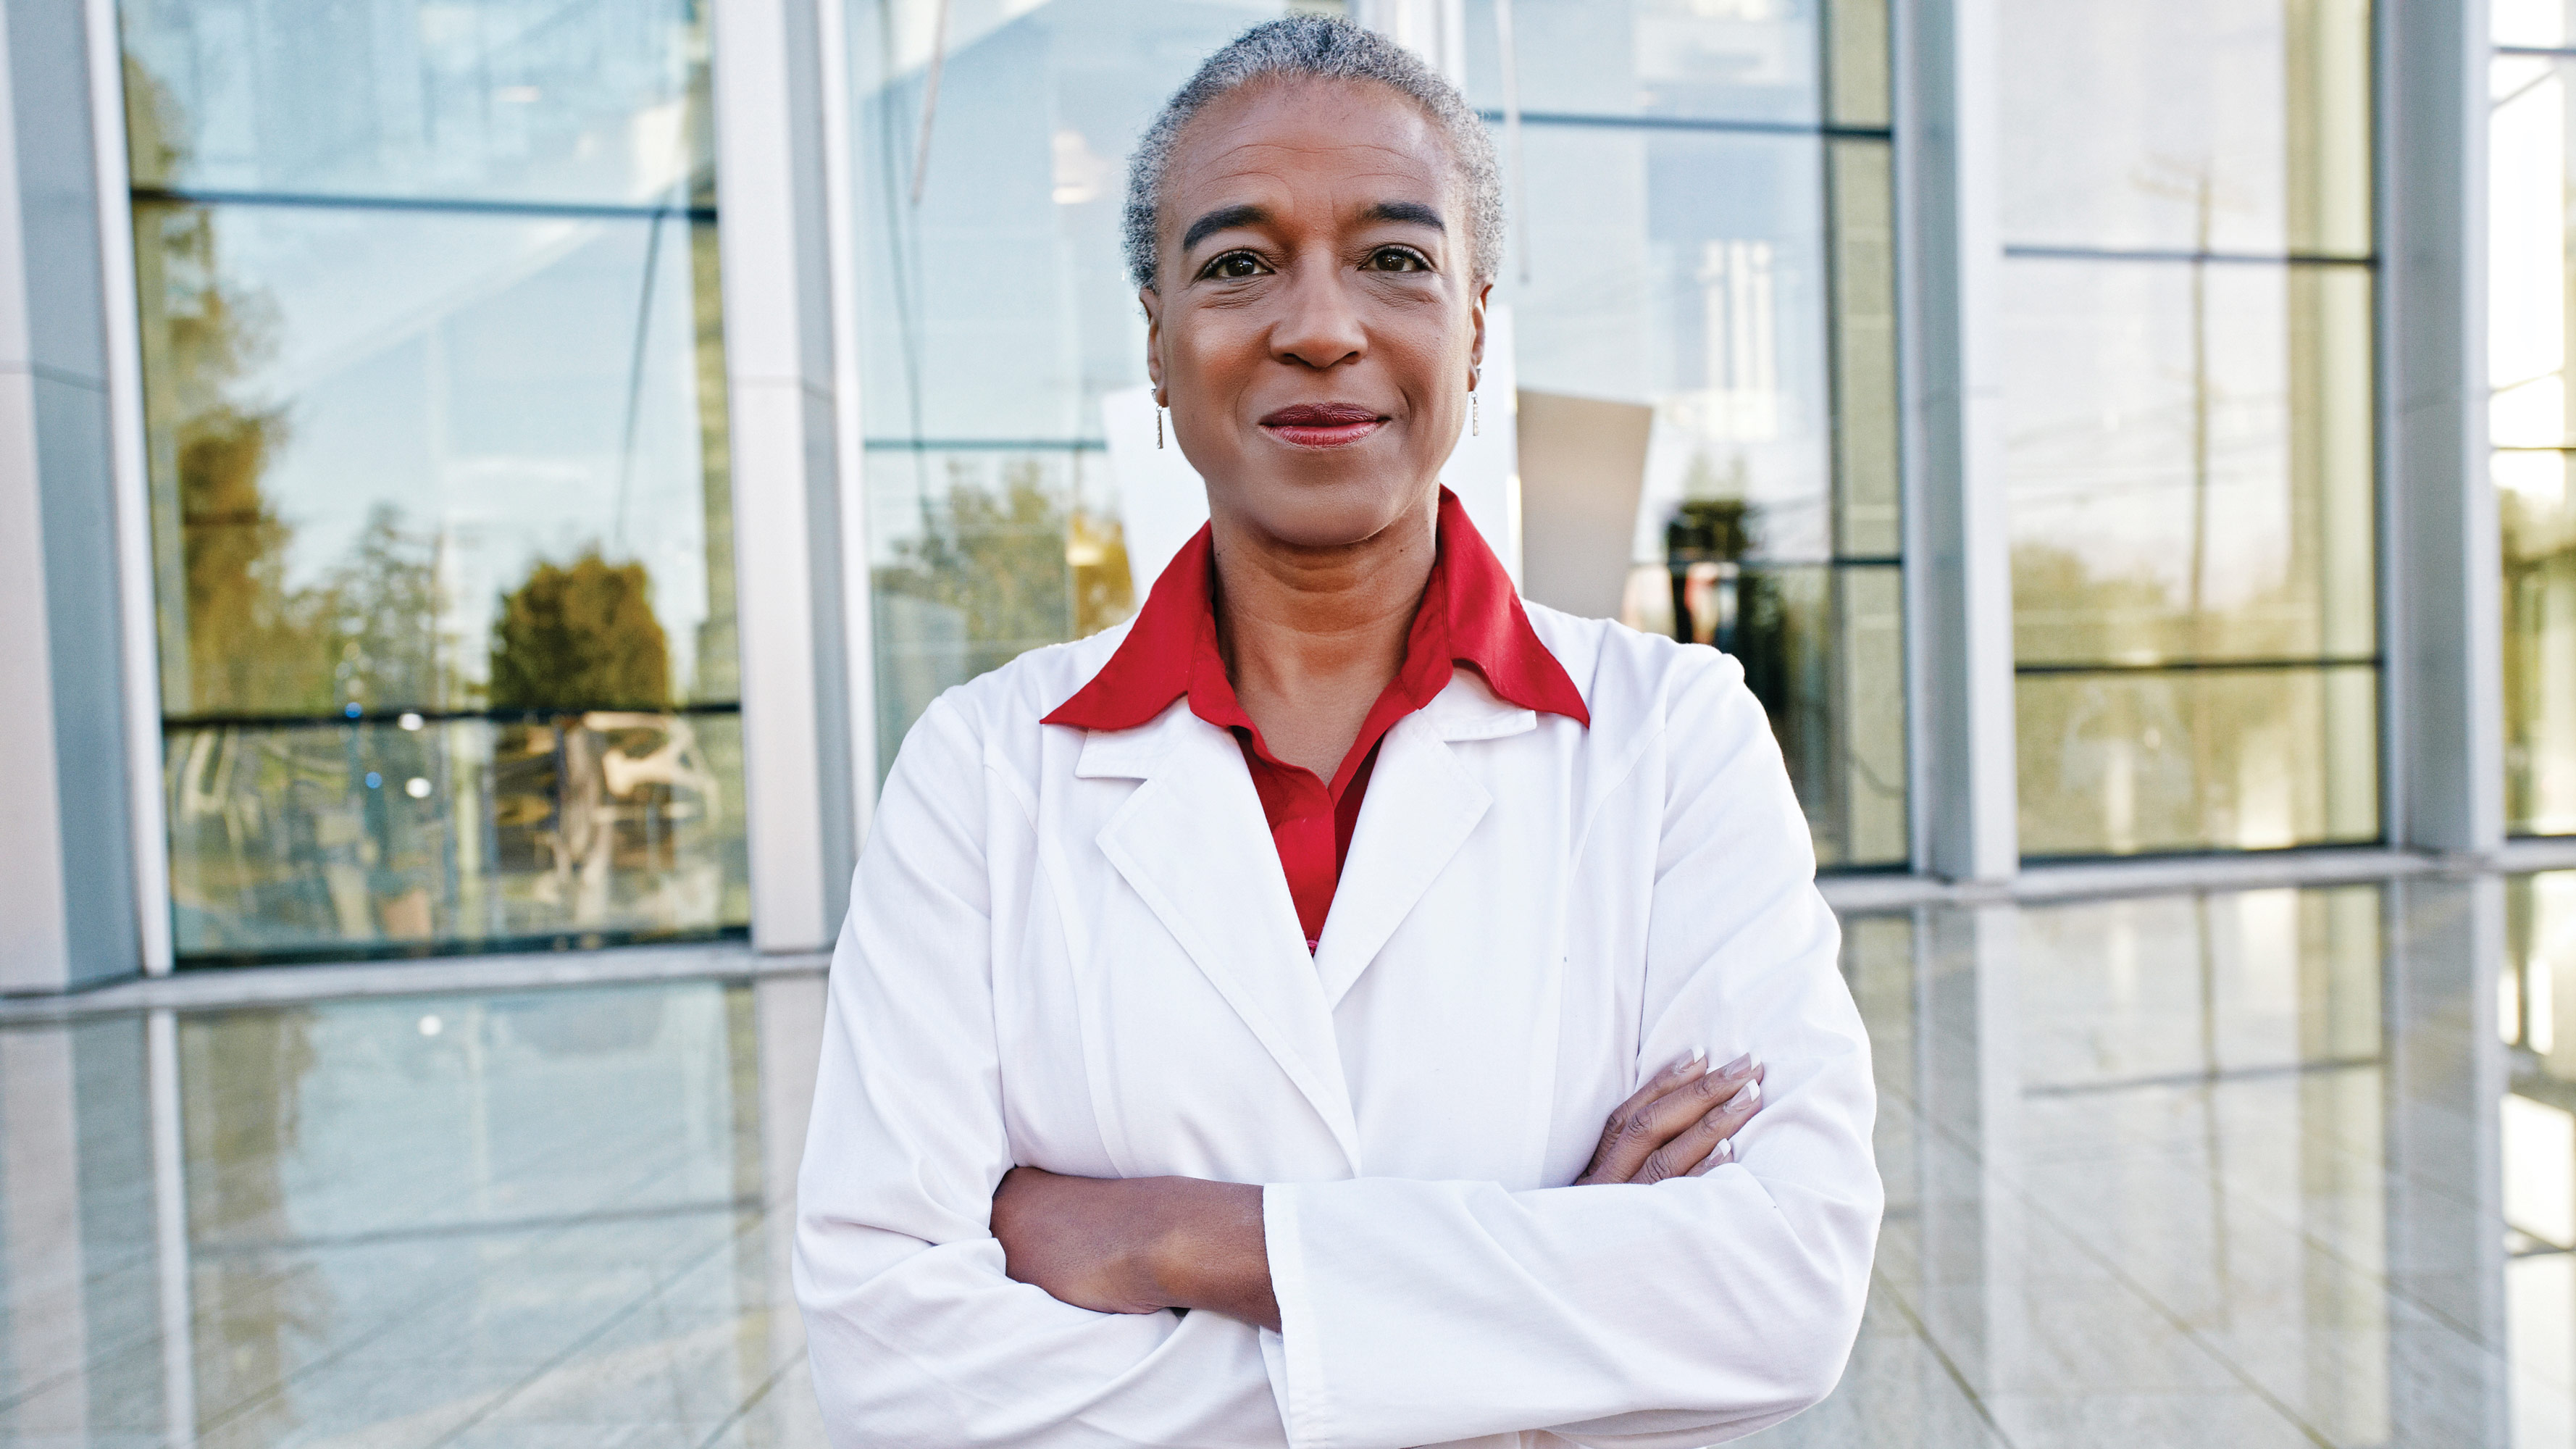 A smiling doctor in a lab coat and red shirt stands in front of a building with her arms crossed.